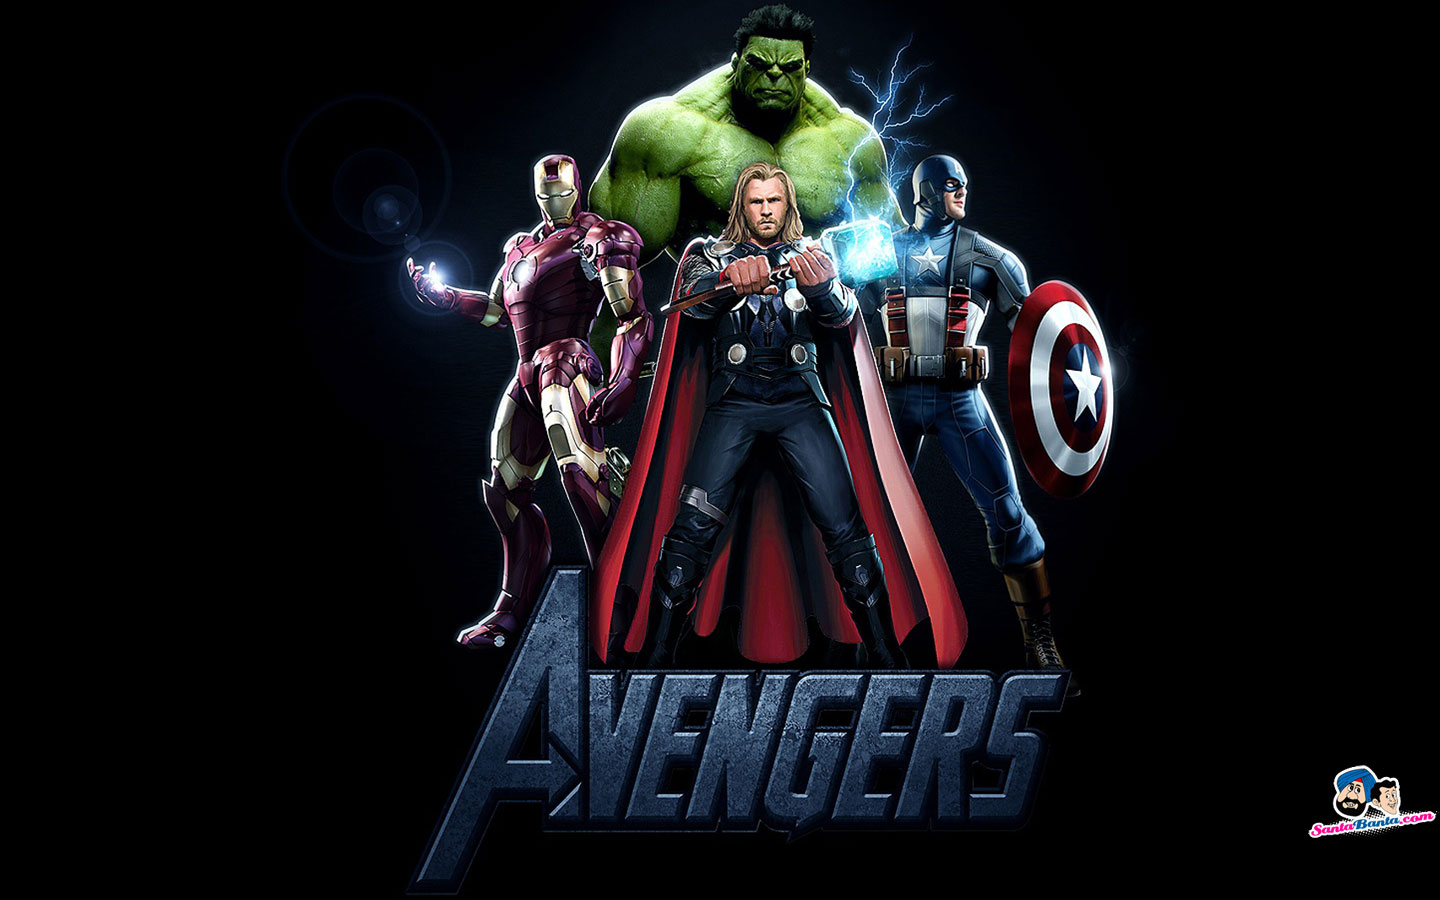 The Avengers 2012 Movie Hd Wallpapers 7 | Apps Directories